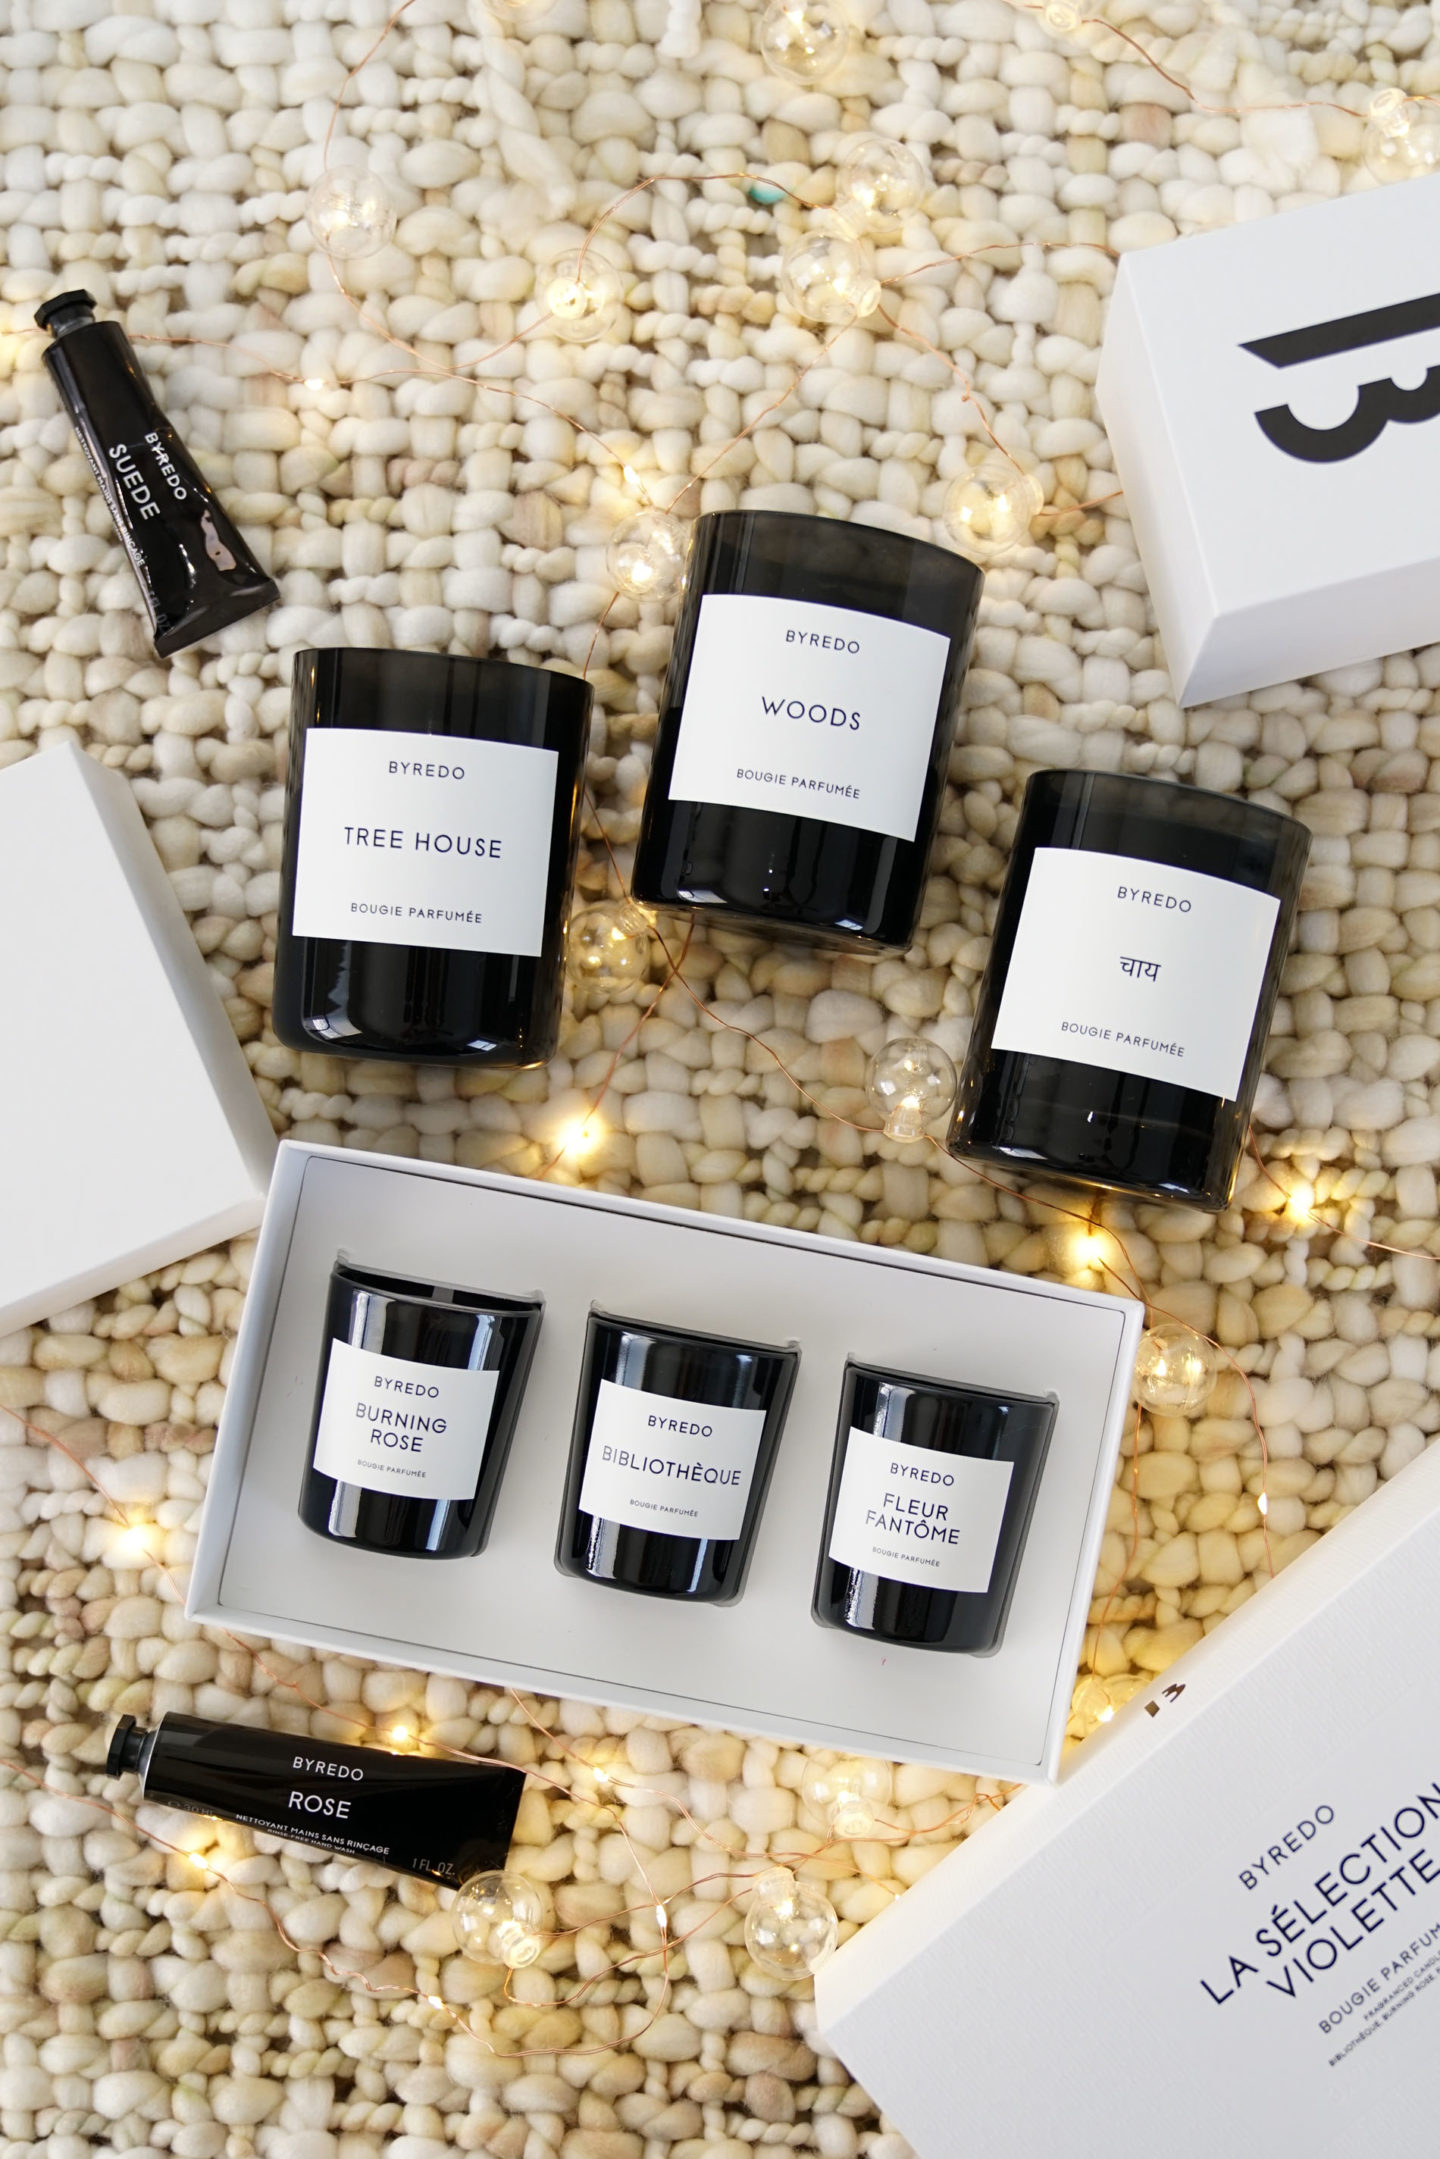 Best of Byredo candles, Tree House, Woods and Chai + Minis | The Beauty Look Book